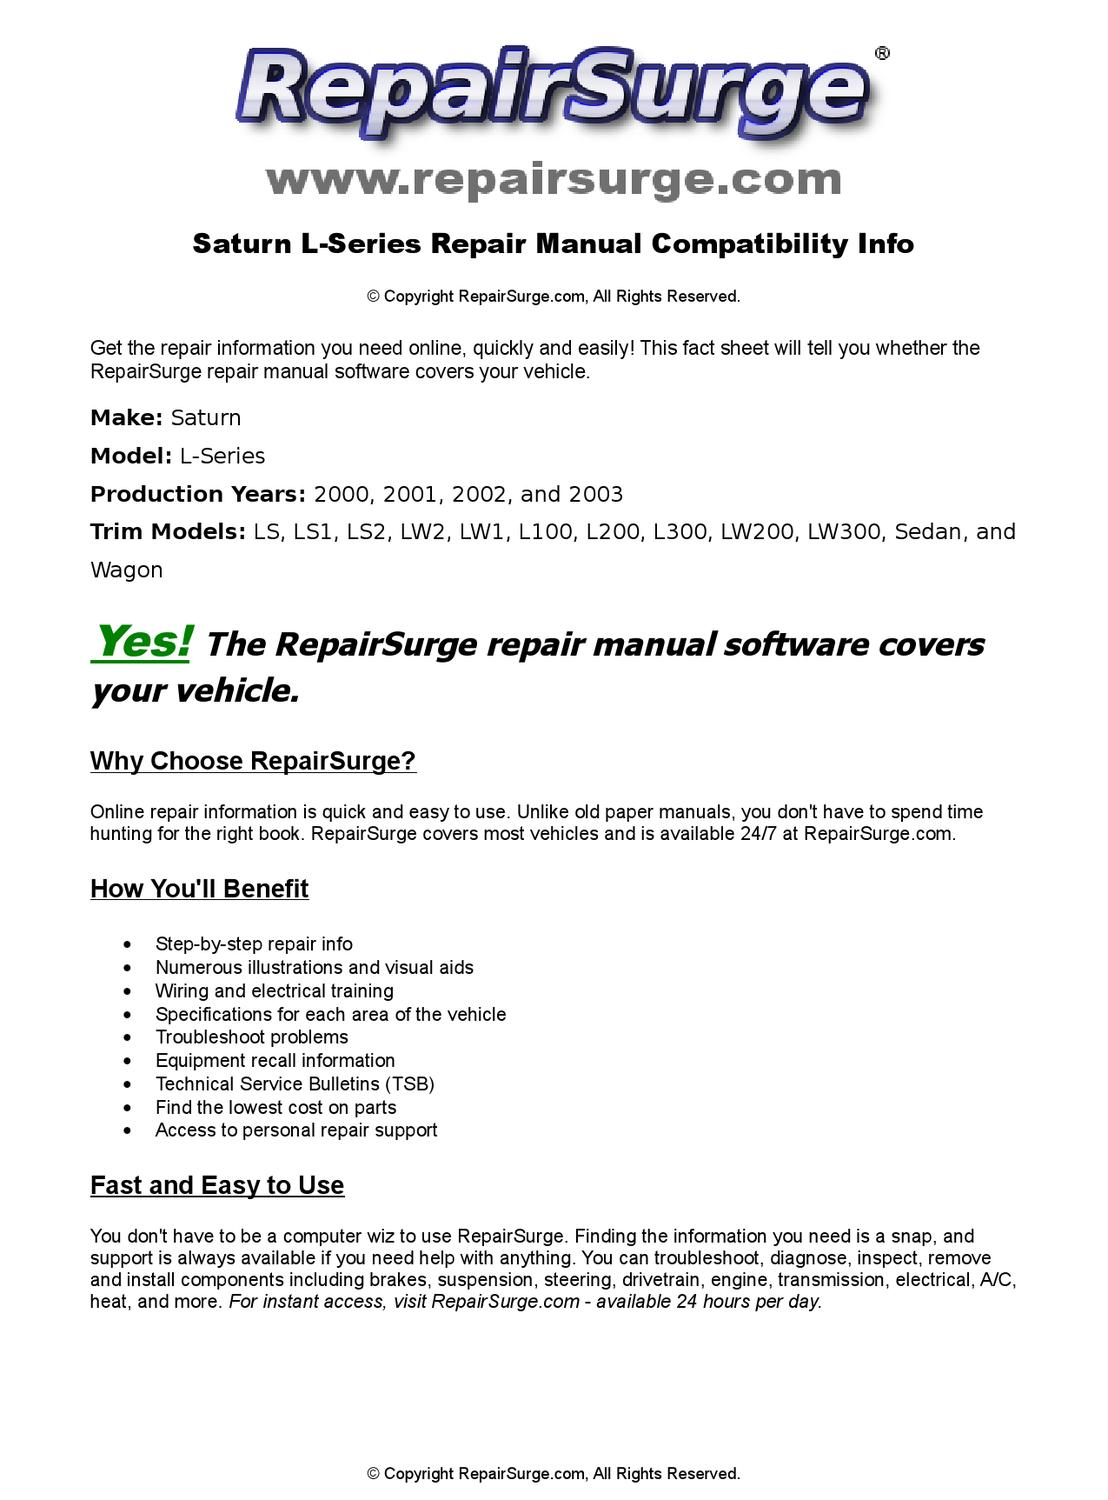 Saturn L-Series Online Repair Manual For 2000, 2001, 2002, and 2003 by  RepairSurge - issuu